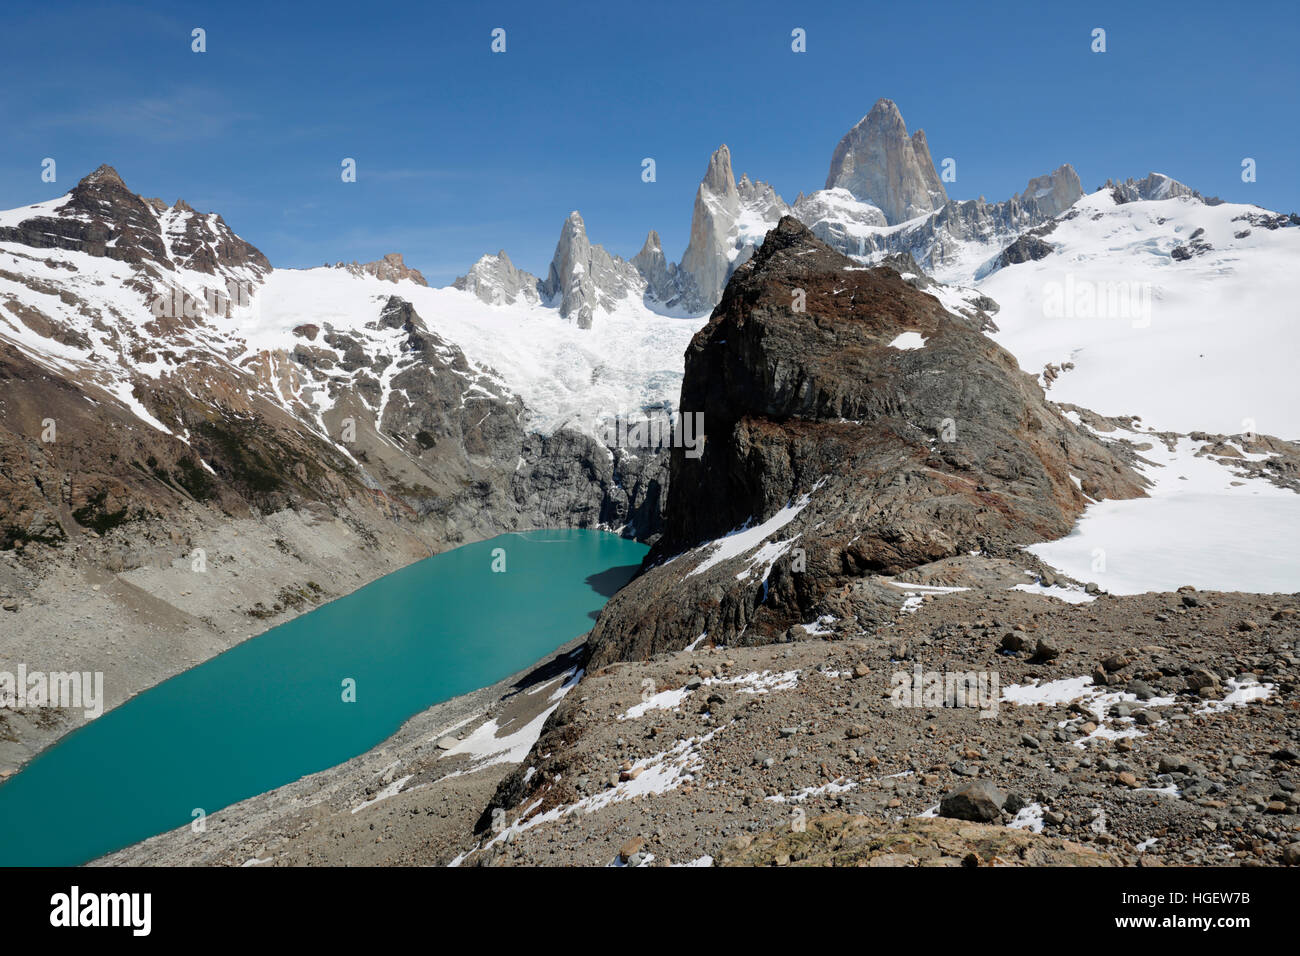 View of Mount Fitz Roy and Laguna de Los Tres and Laguna Sucia, El Chalten, Patagonia, Argentina, South America - Stock Image